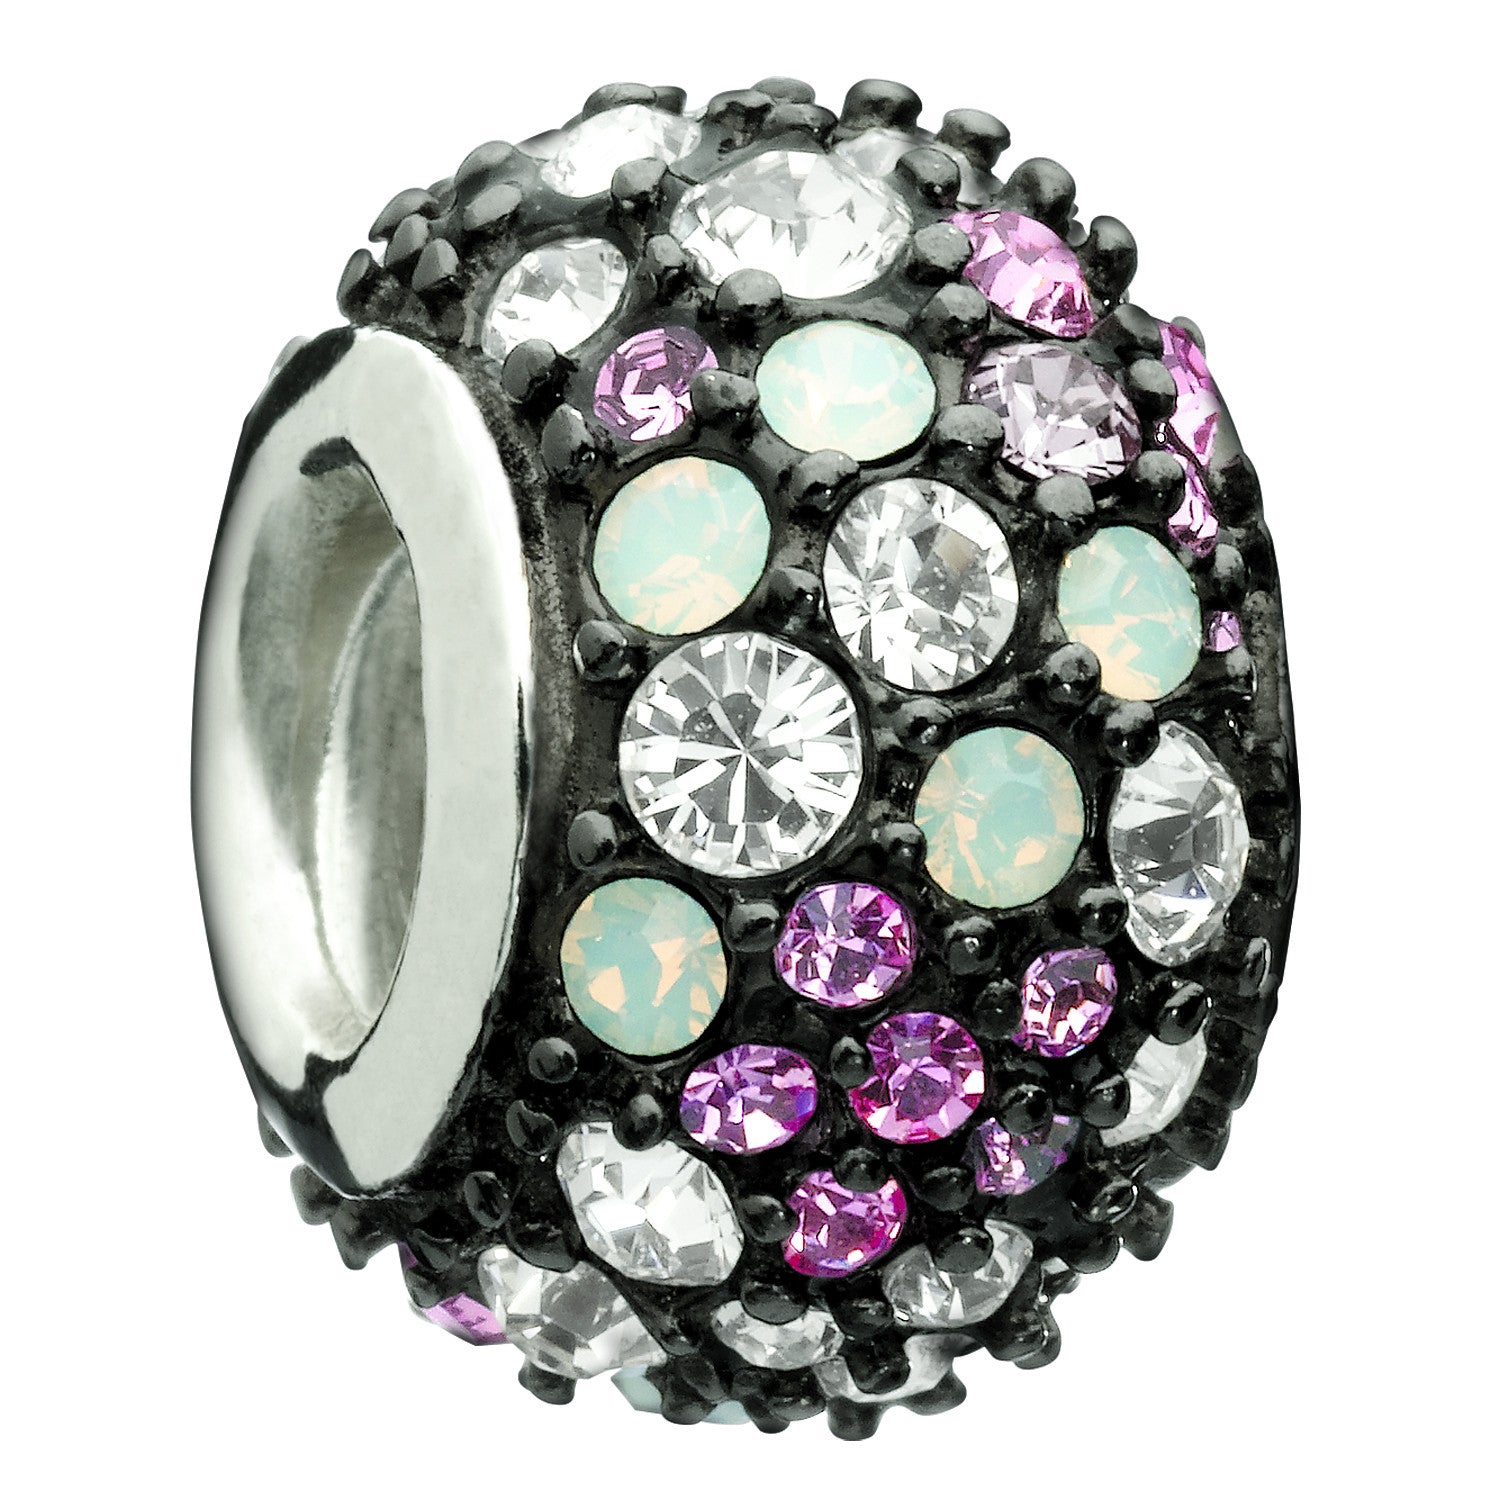 Jeweled Kaleidoscope Pink and Black - Retired